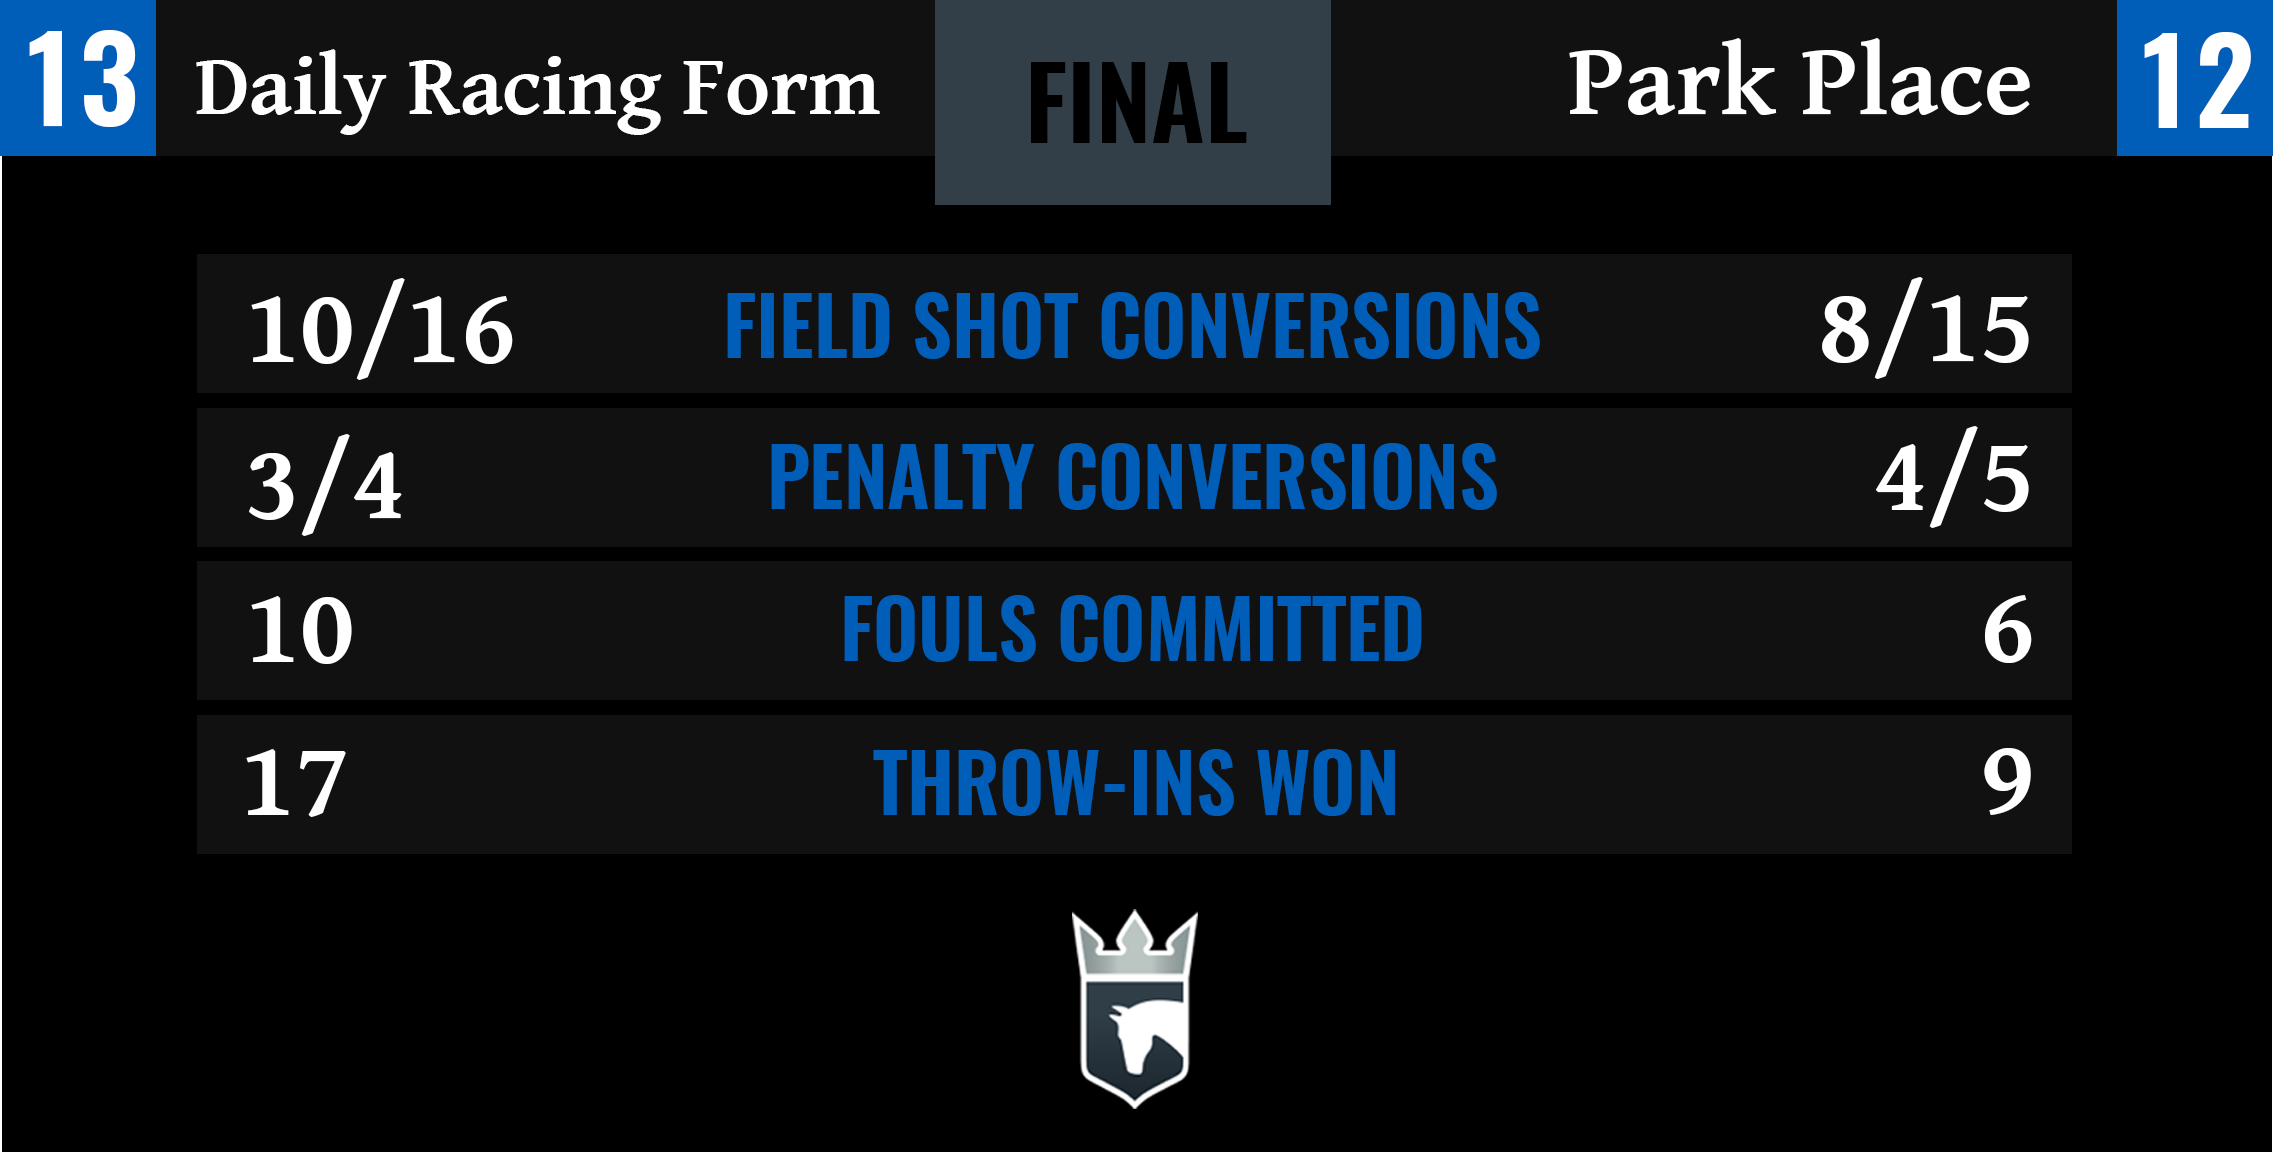 Daily Racing Form vs Park Place Final Stats